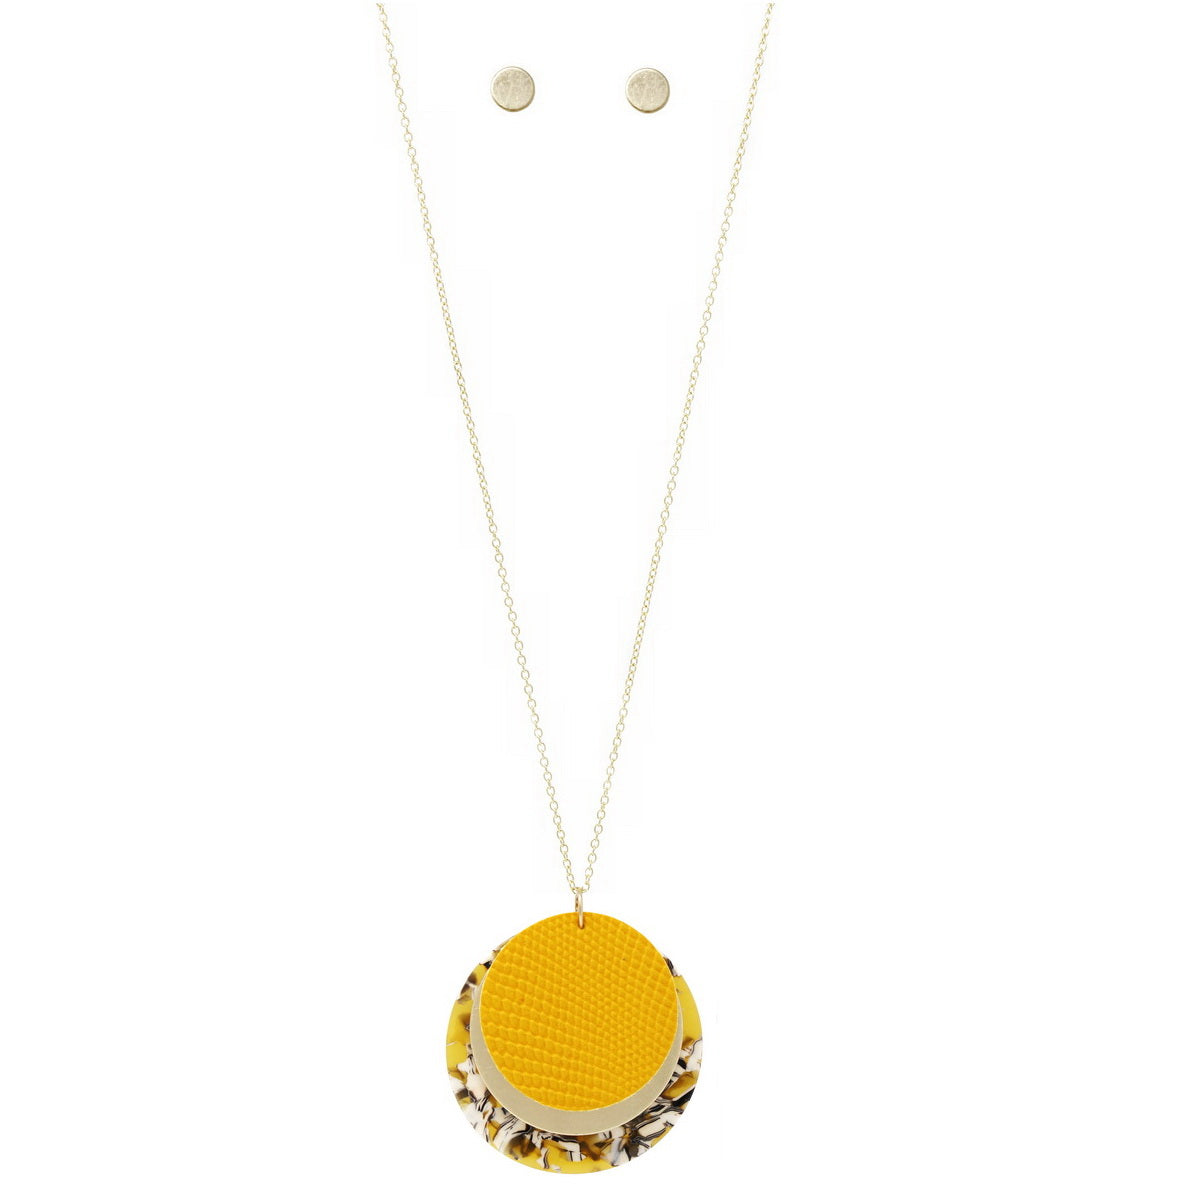 Acetate / Metal / Leather Disc Pendant Long Chain Necklace